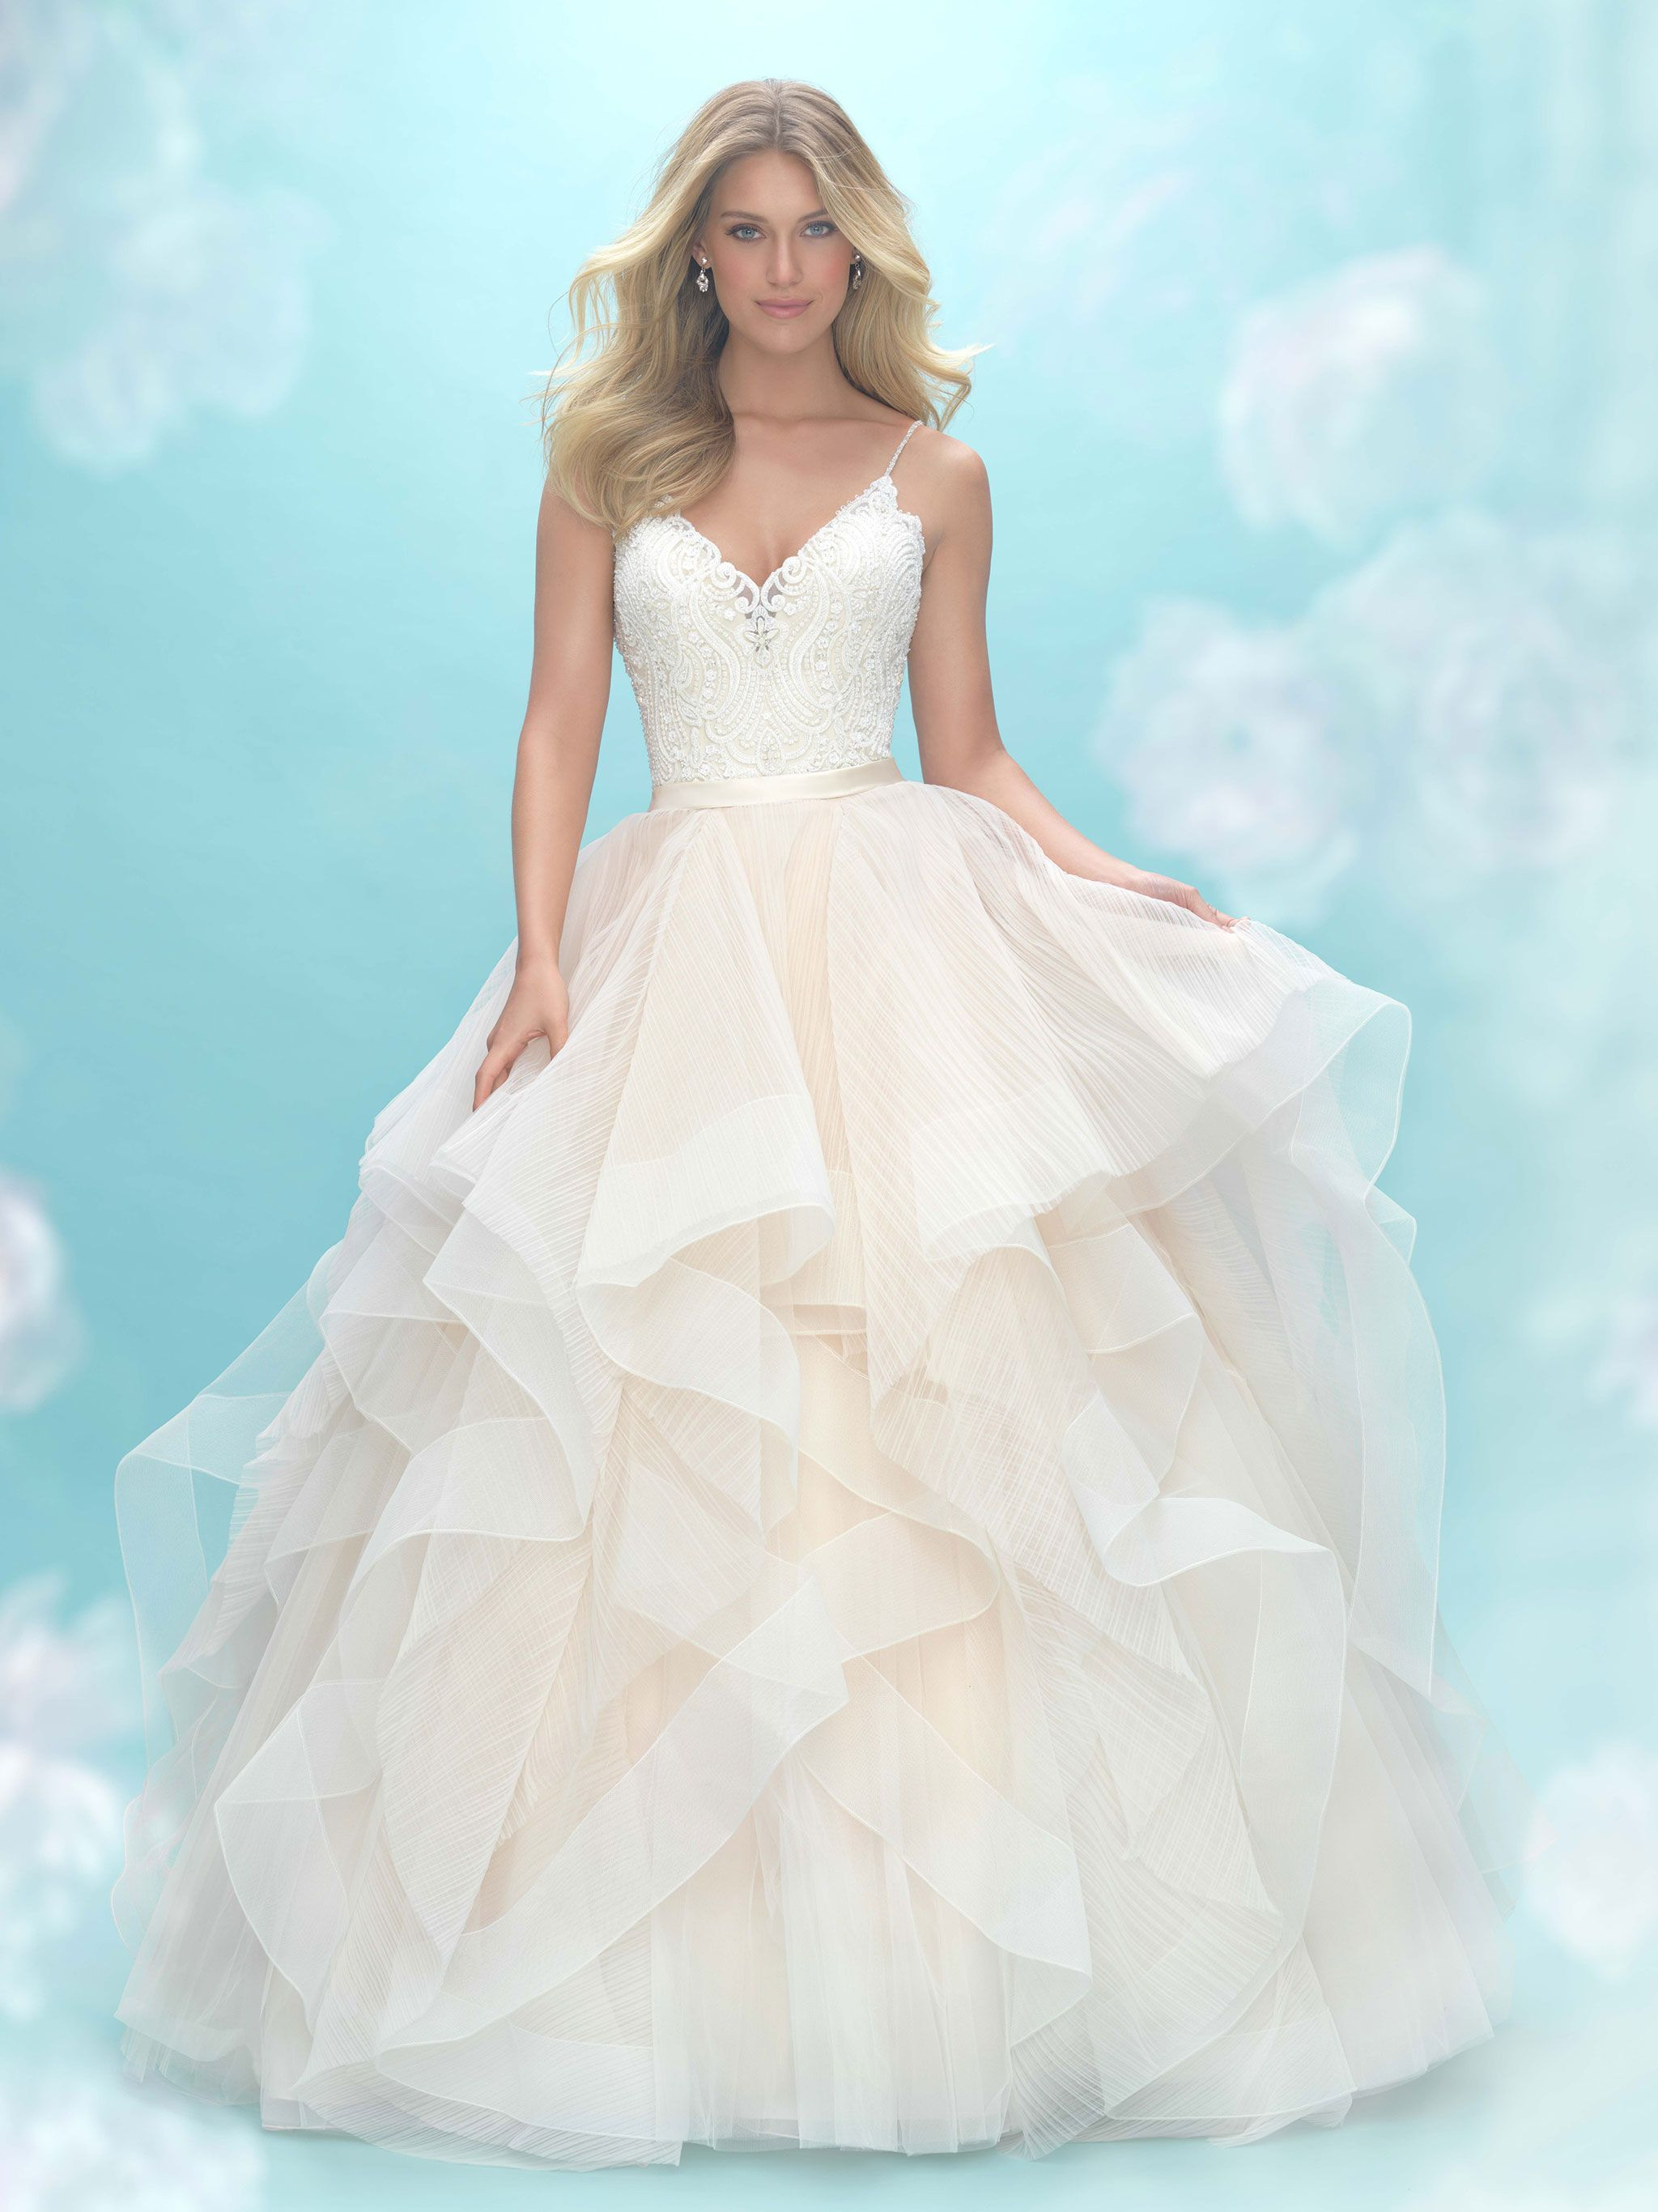 db05c51426 Allure Bridals 9450 Ivory Size 16 | Webster in 2019 | Wedding ...